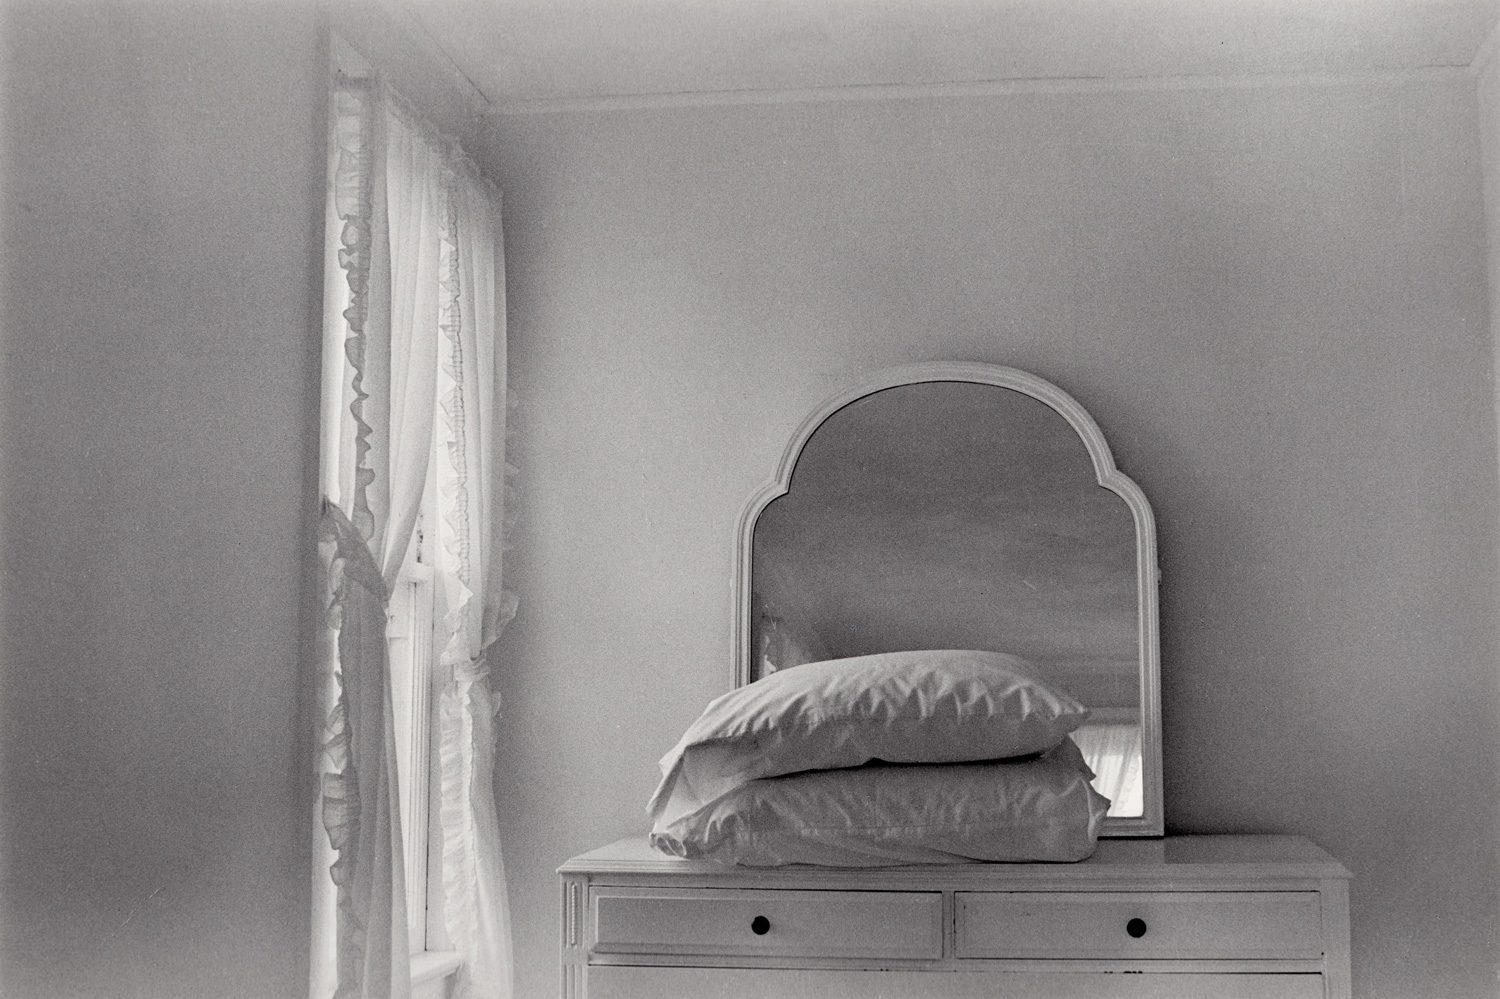 Dresser with Pillows in front of Mirror